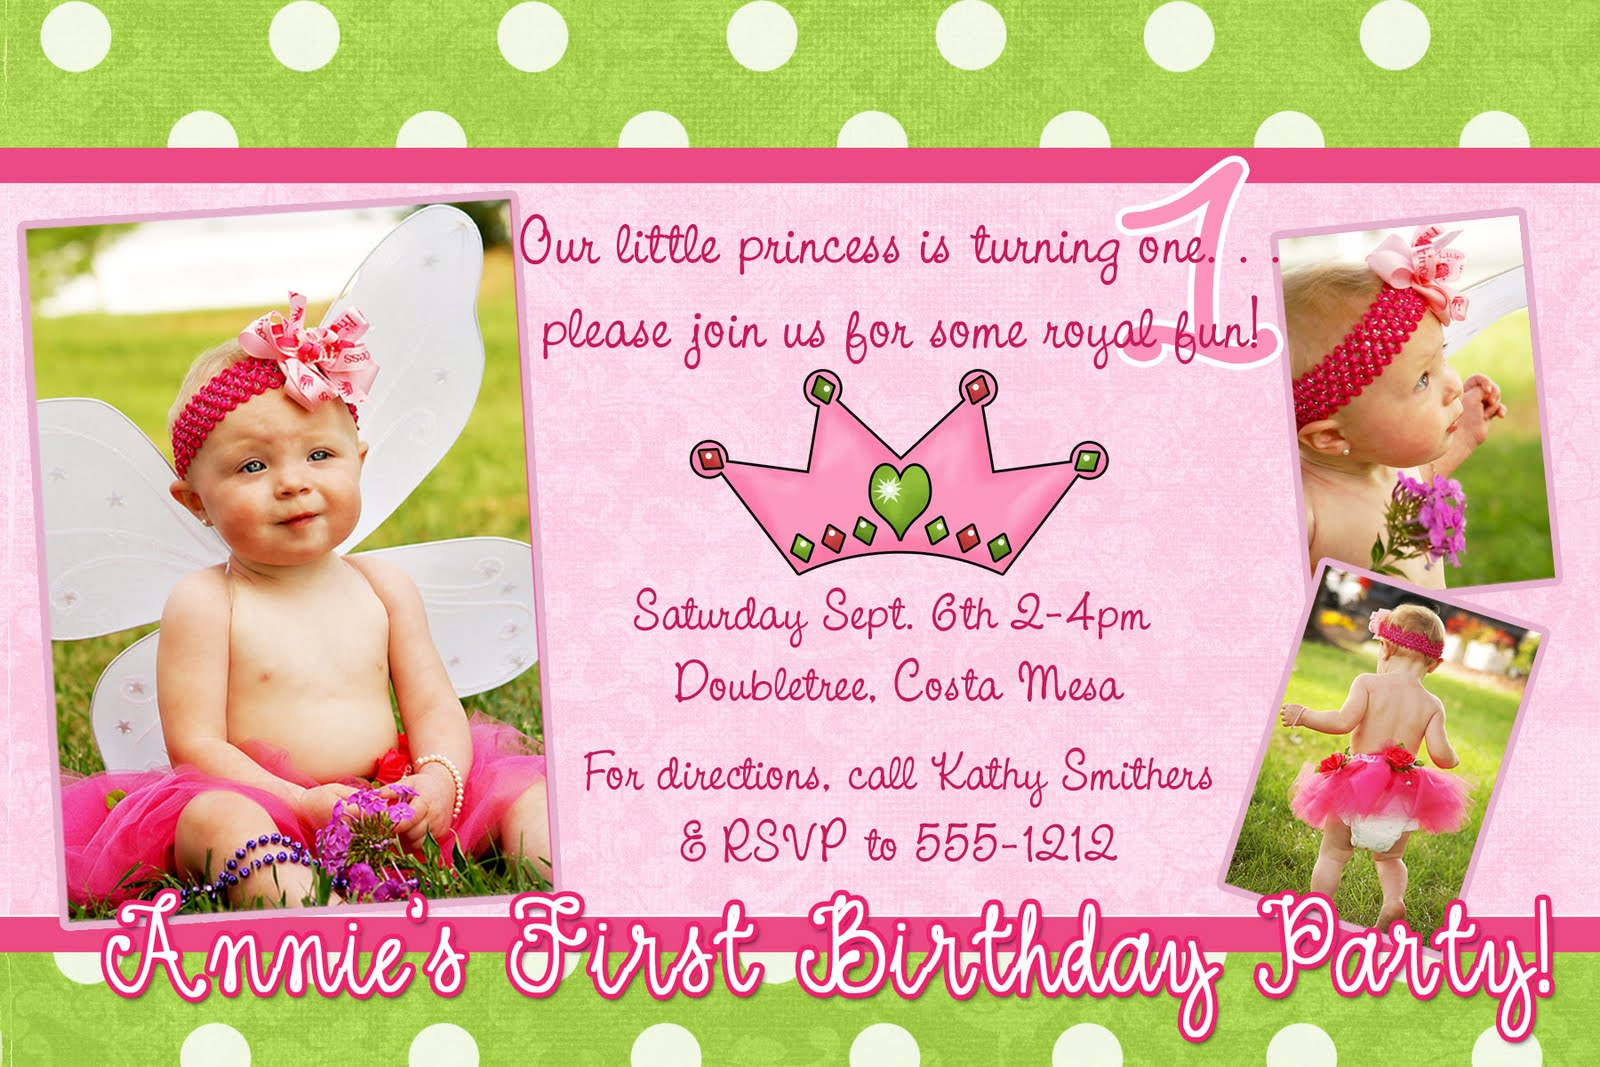 Spellbound Designs Custom Photo Announcements and Invitations